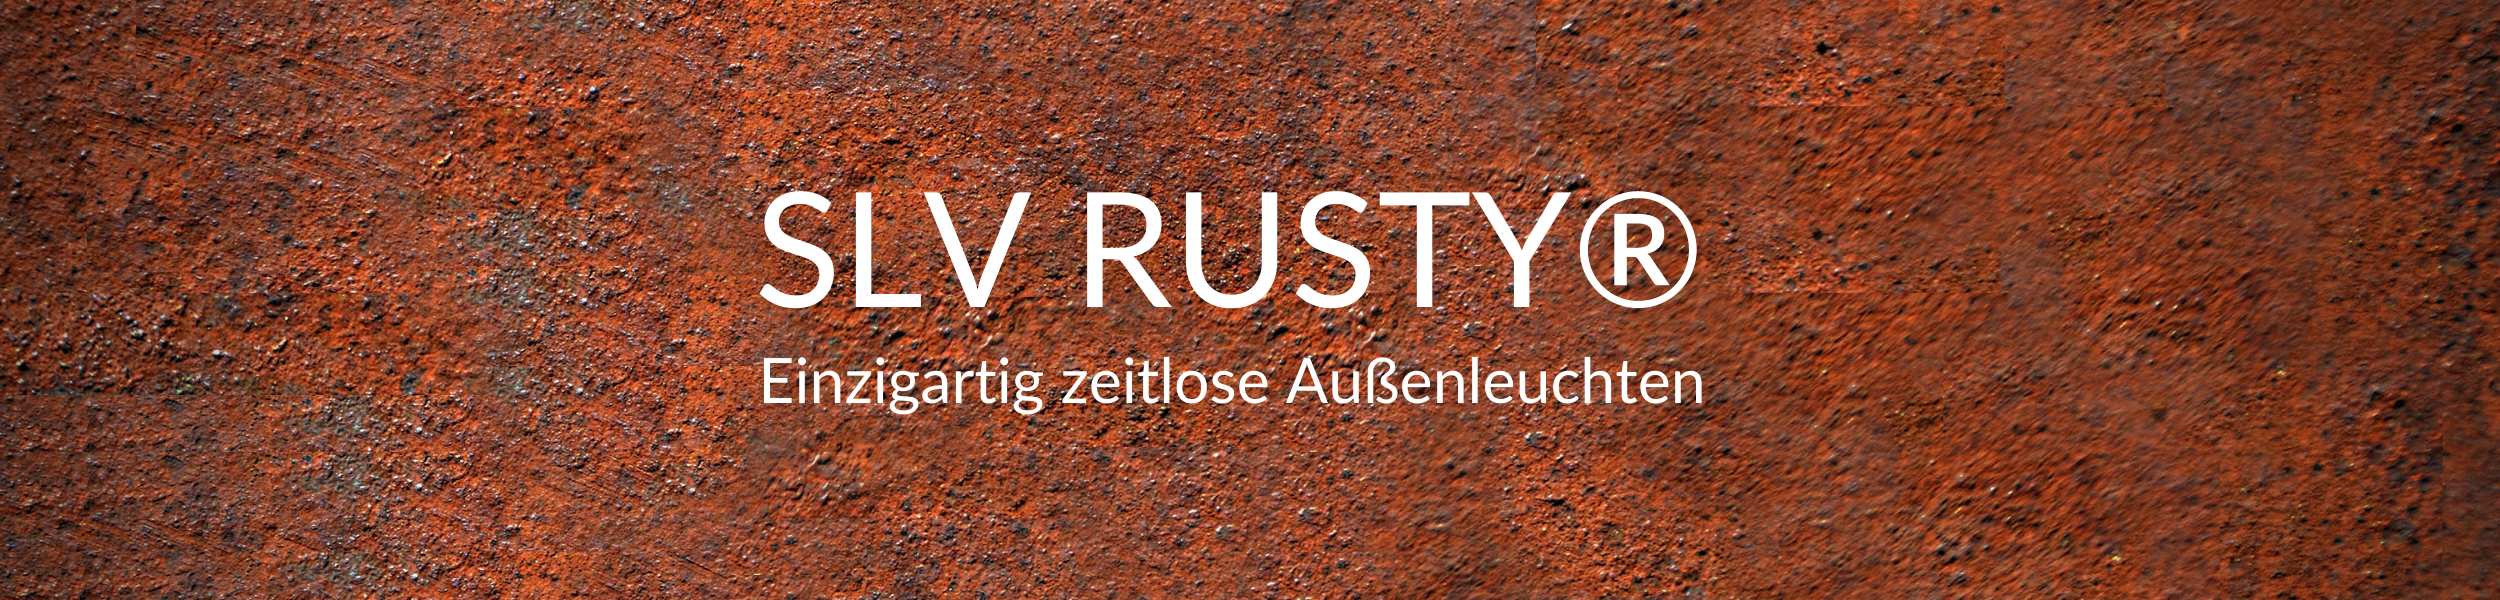 SLV RUSTY® | Rost als Stilelement